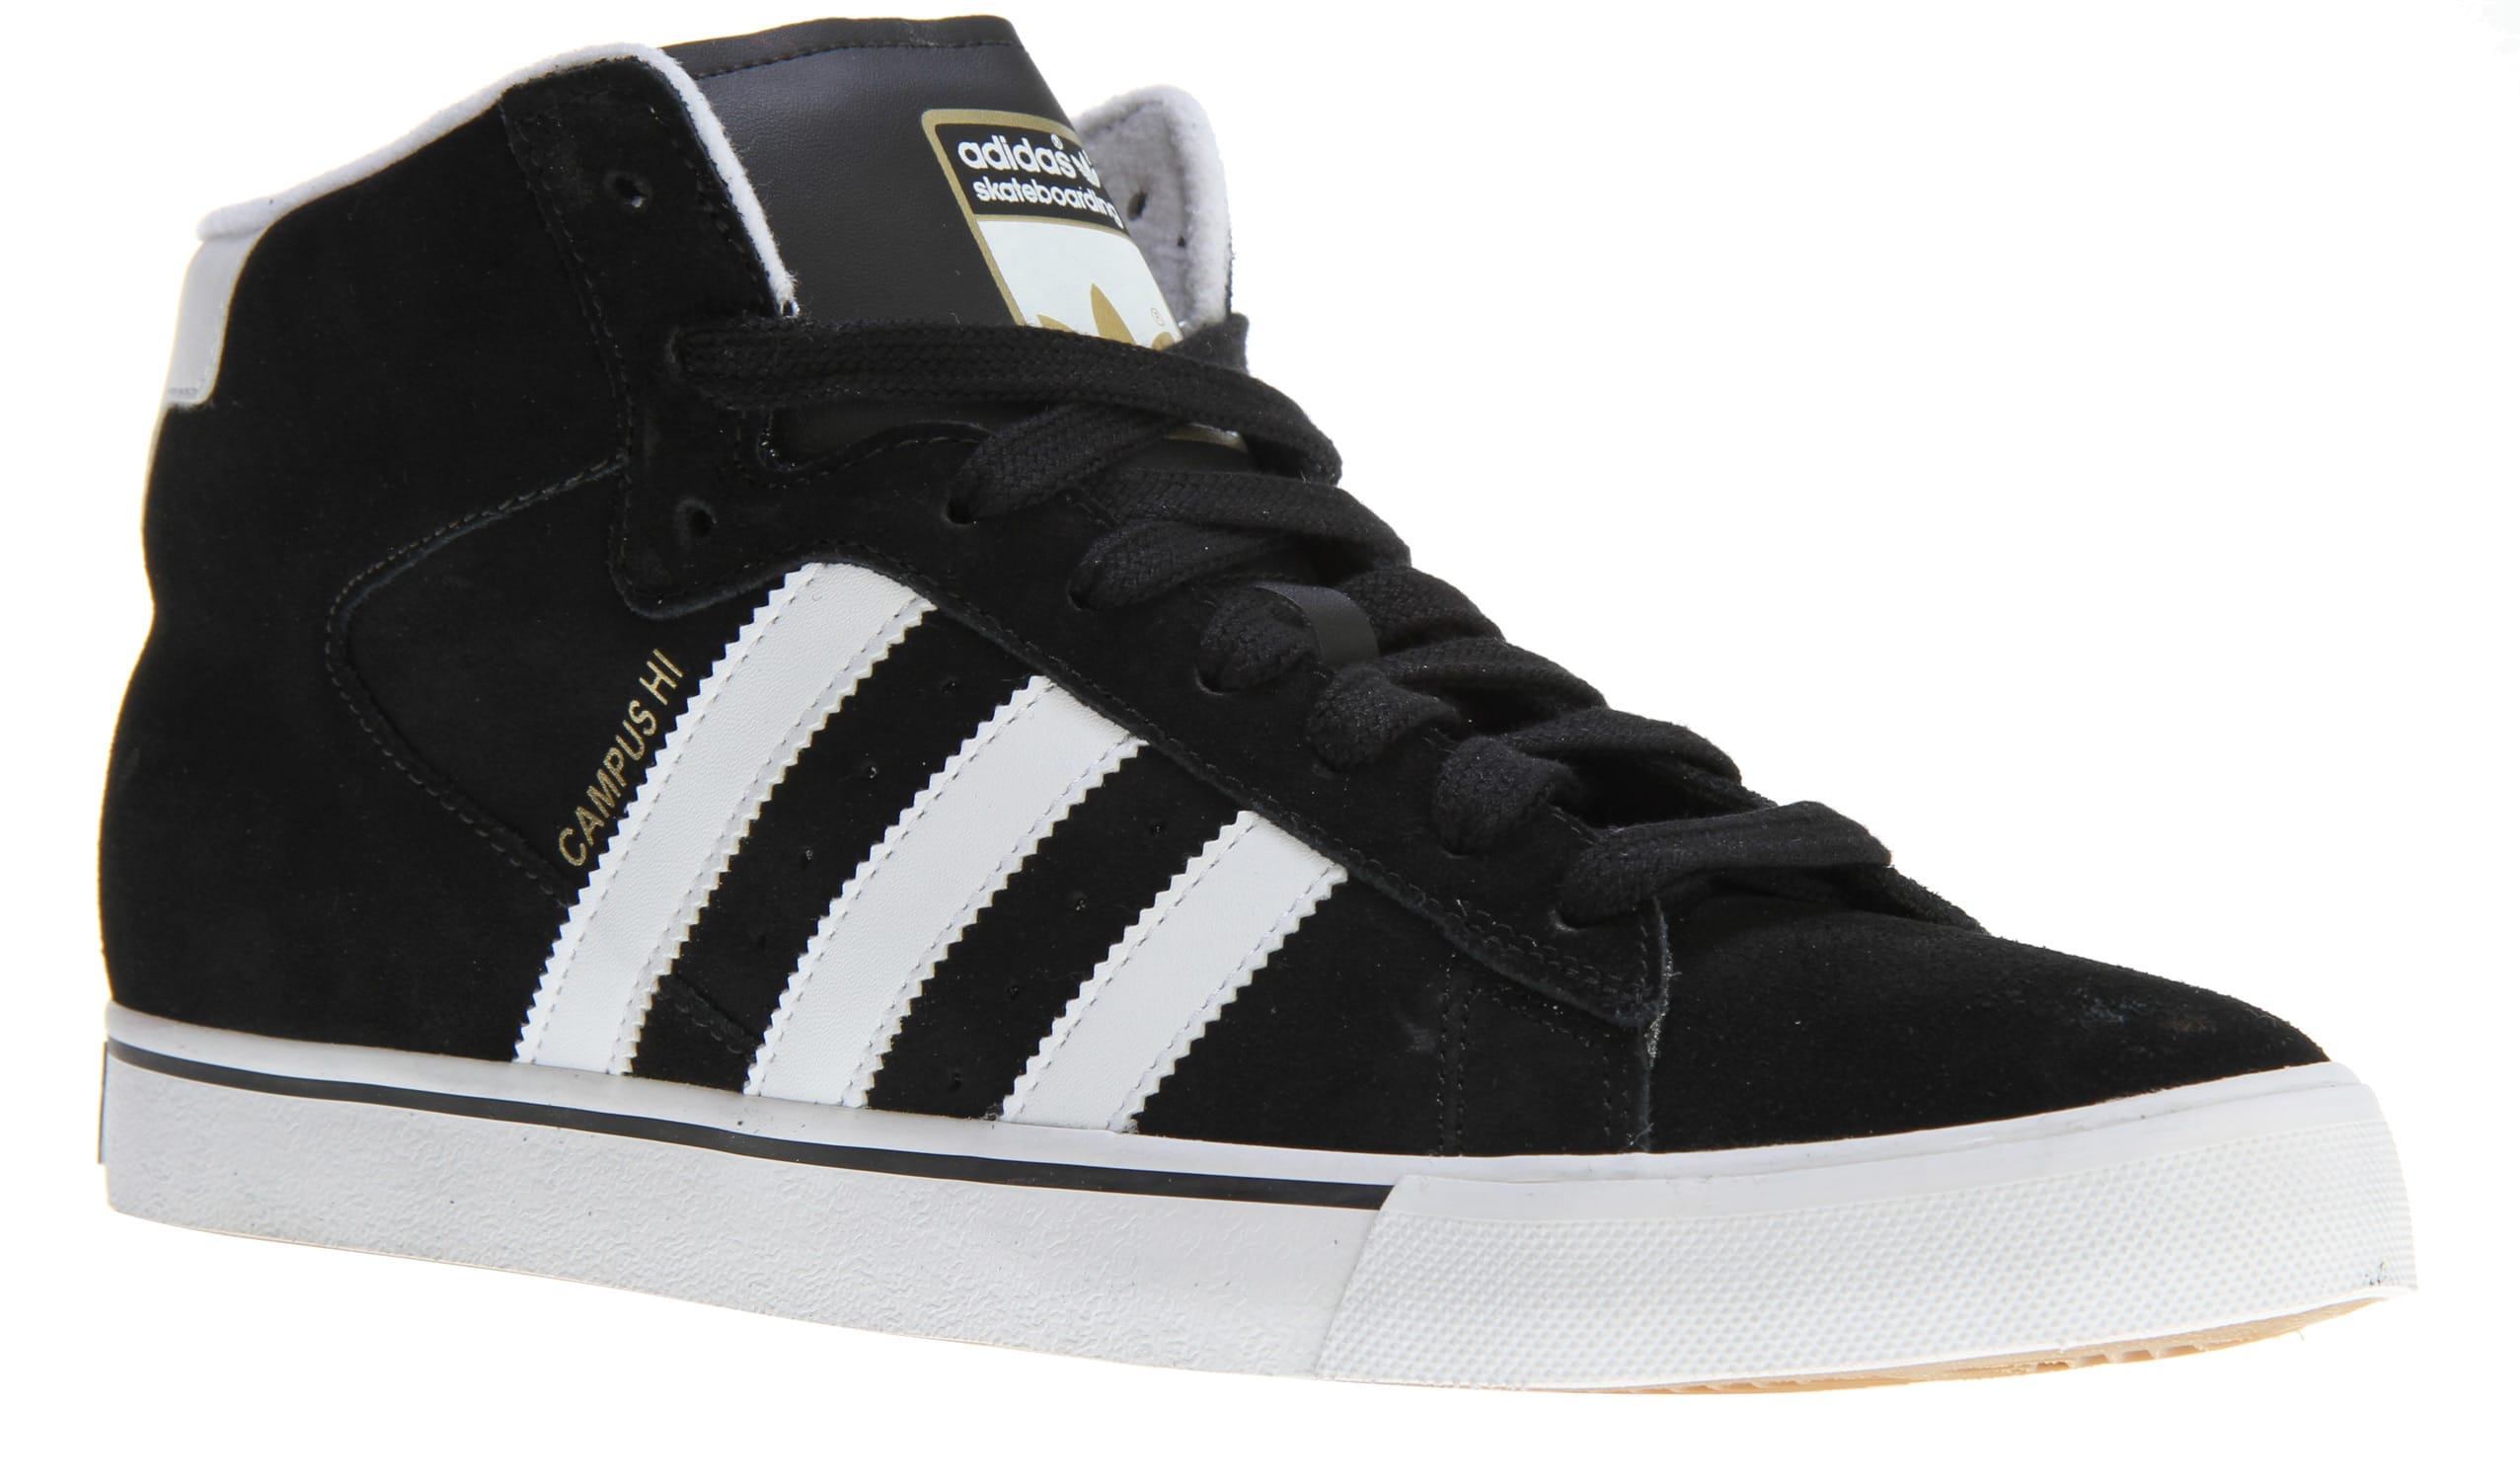 premium selection 4411c 4f07c Adidas Campus Vulc Mid Skate Shoes - thumbnail 2